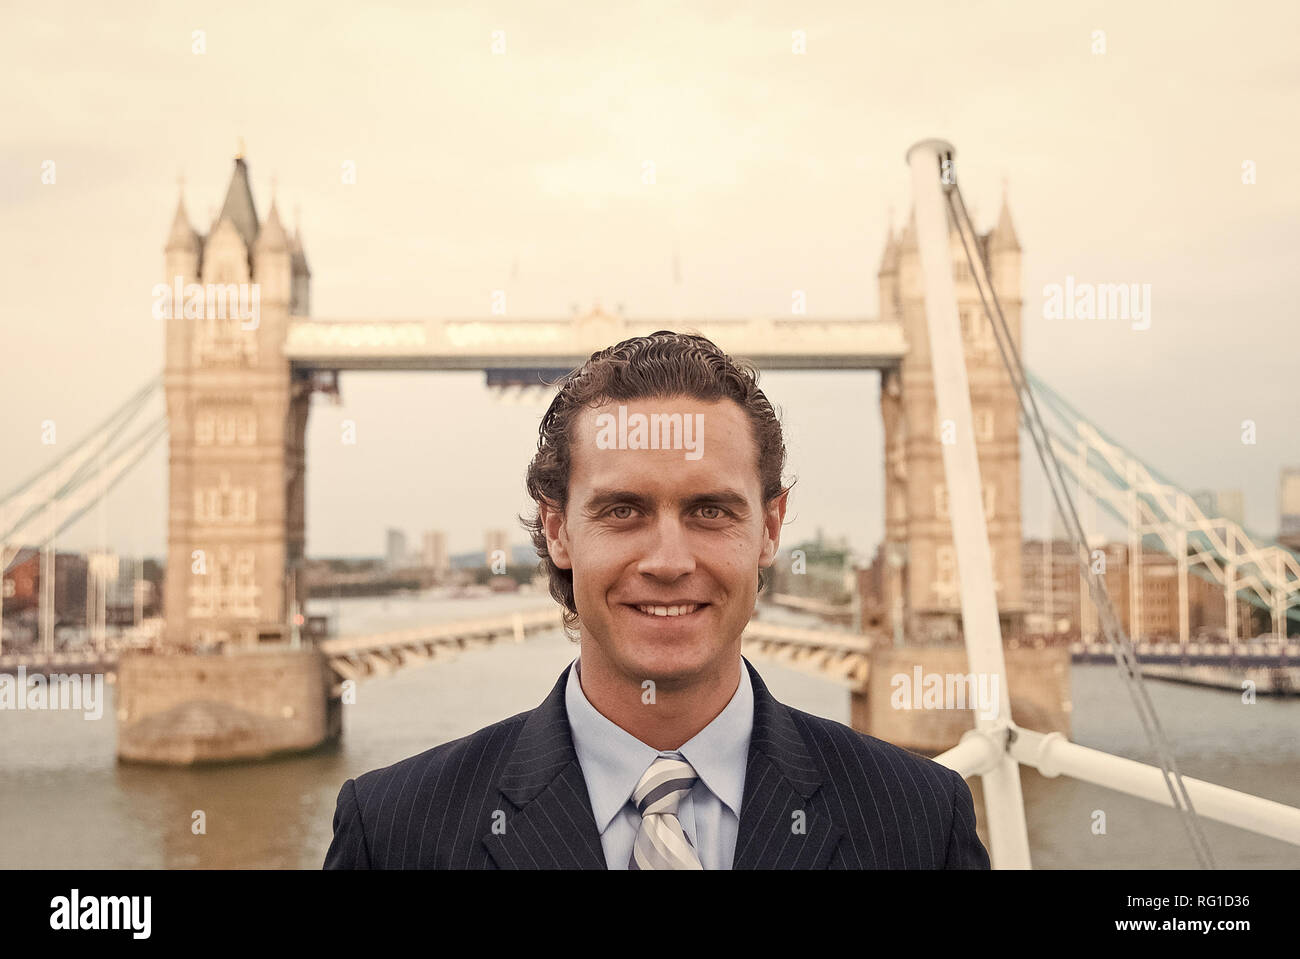 Man smile in London, United Kingdom. Happy businessman at Tower bridge. Tourist enjoy sightseeing in city. Travelling for business and pleasure. Architecture and design concept. - Stock Image